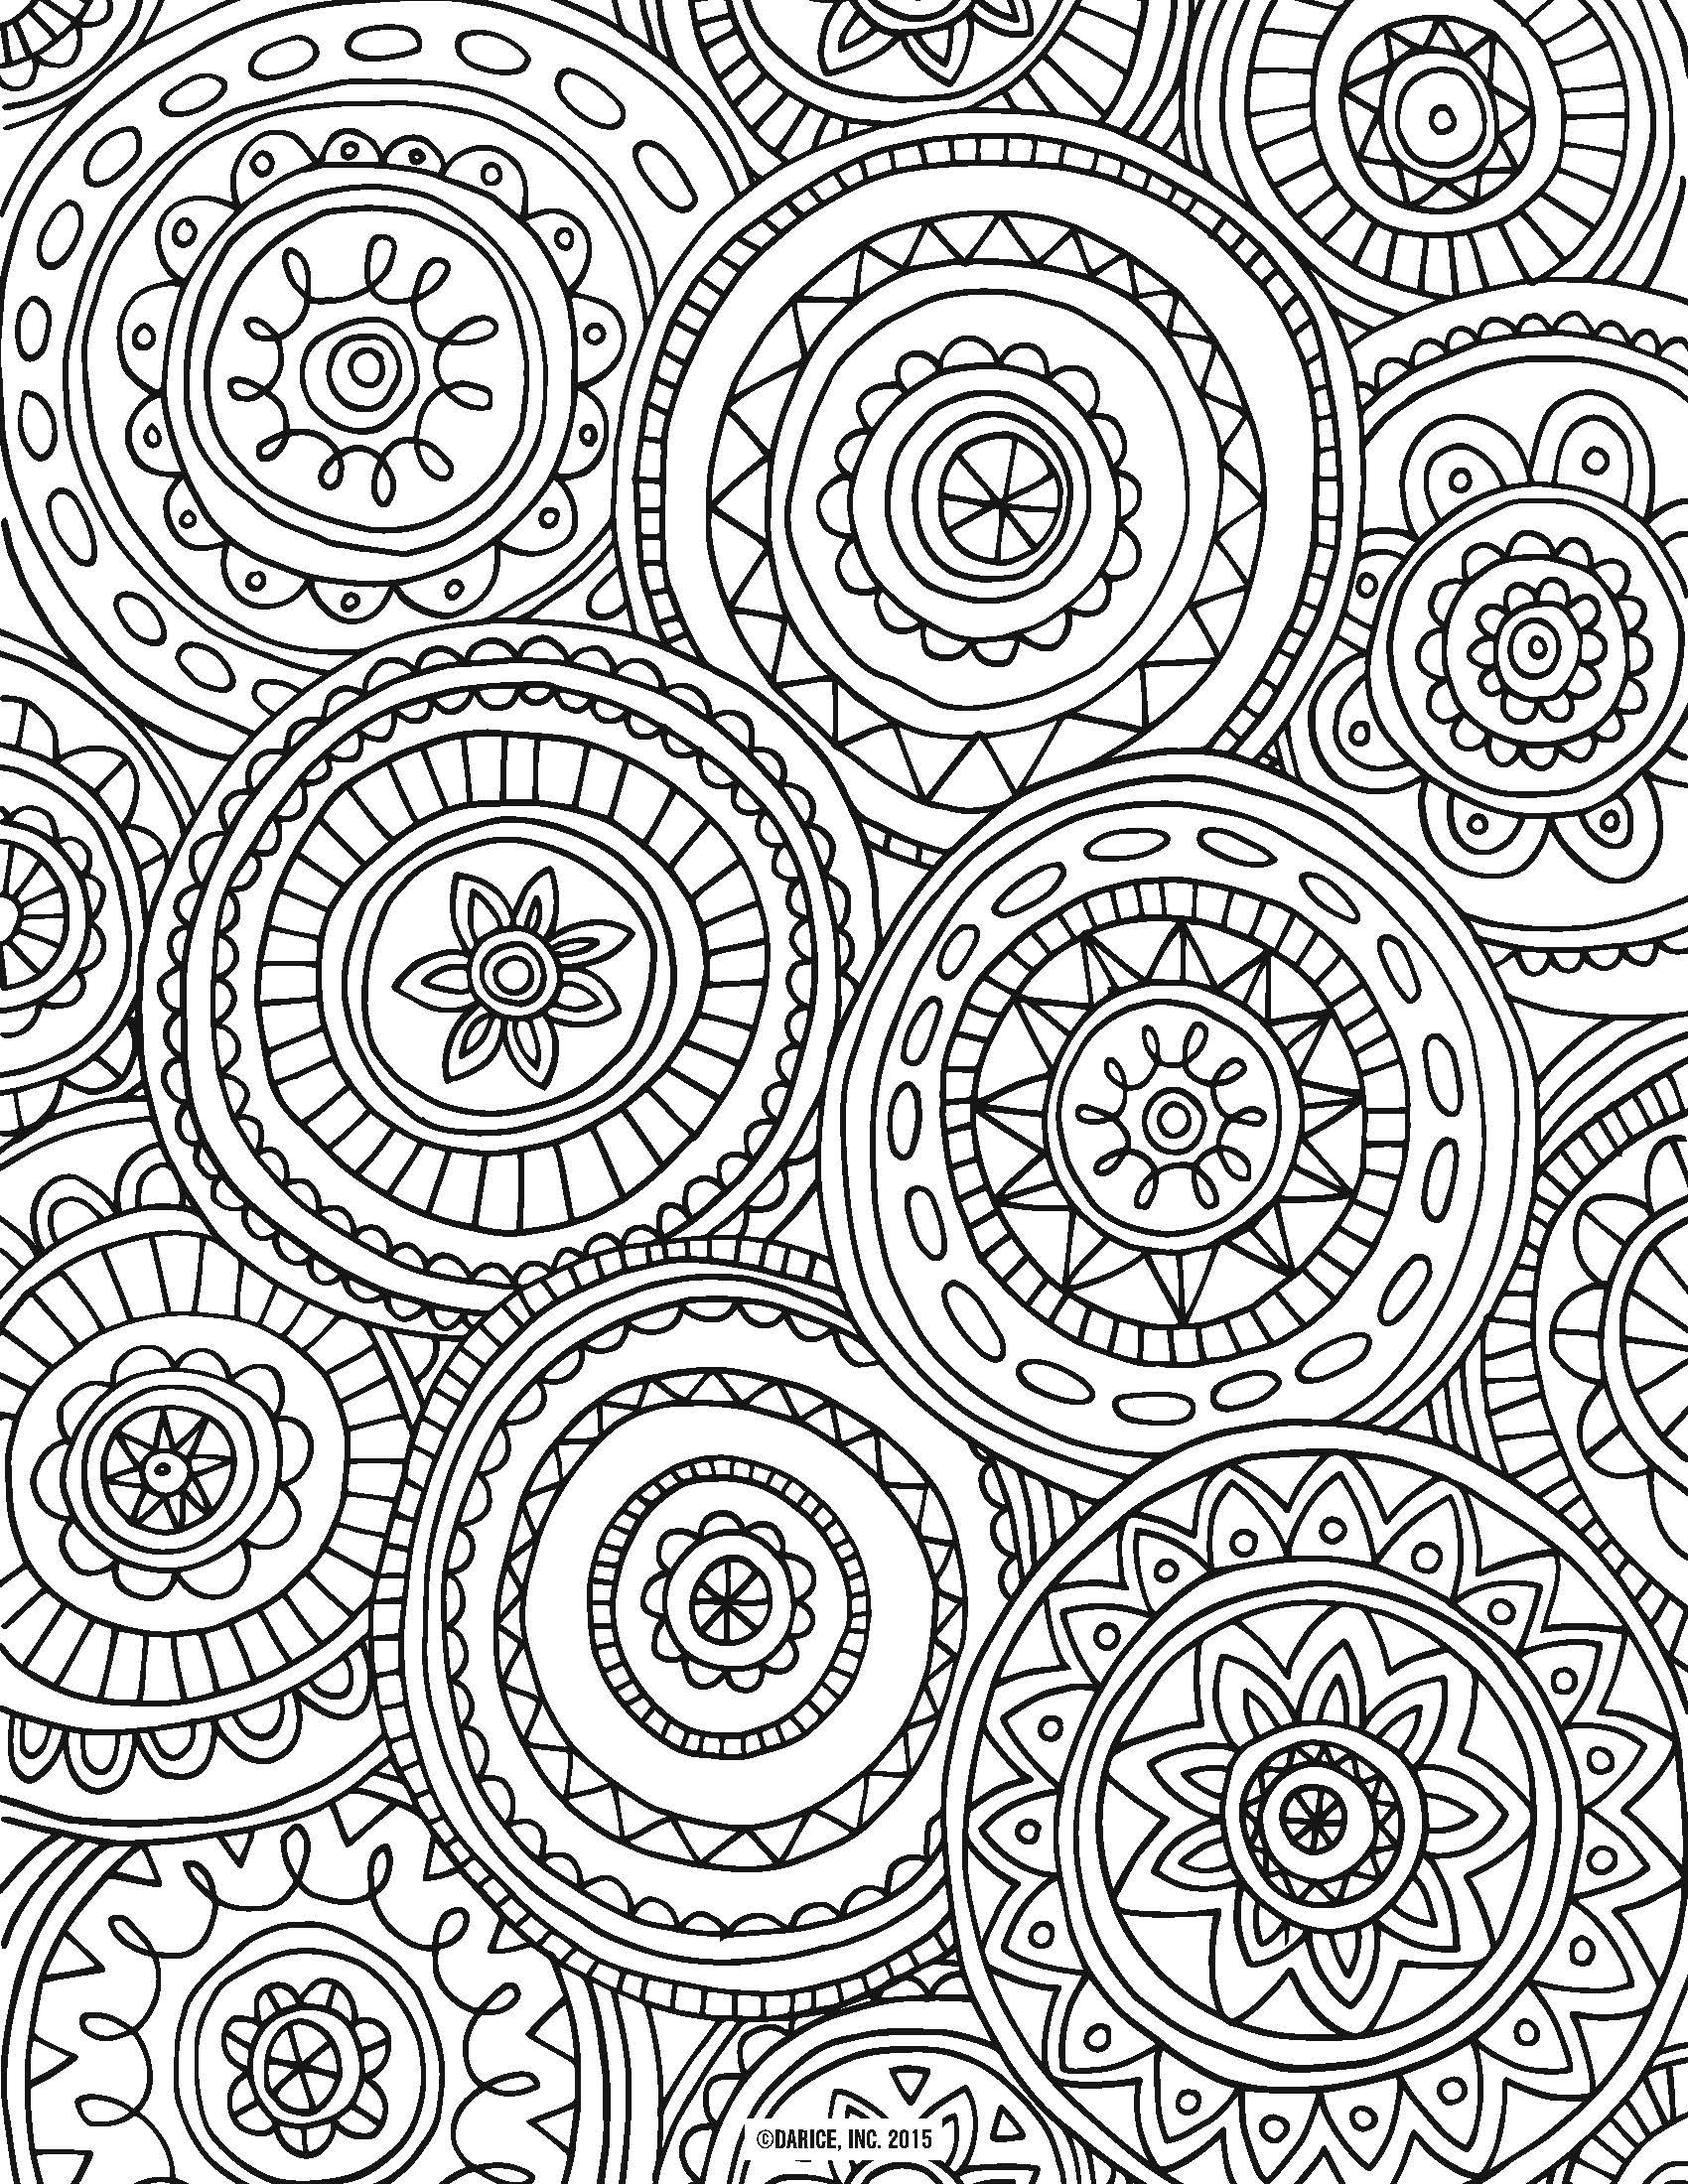 Coloring Pages : Coloring Pages Of The Best Adult Colouring Free - Free Coloring Pages Com Printable